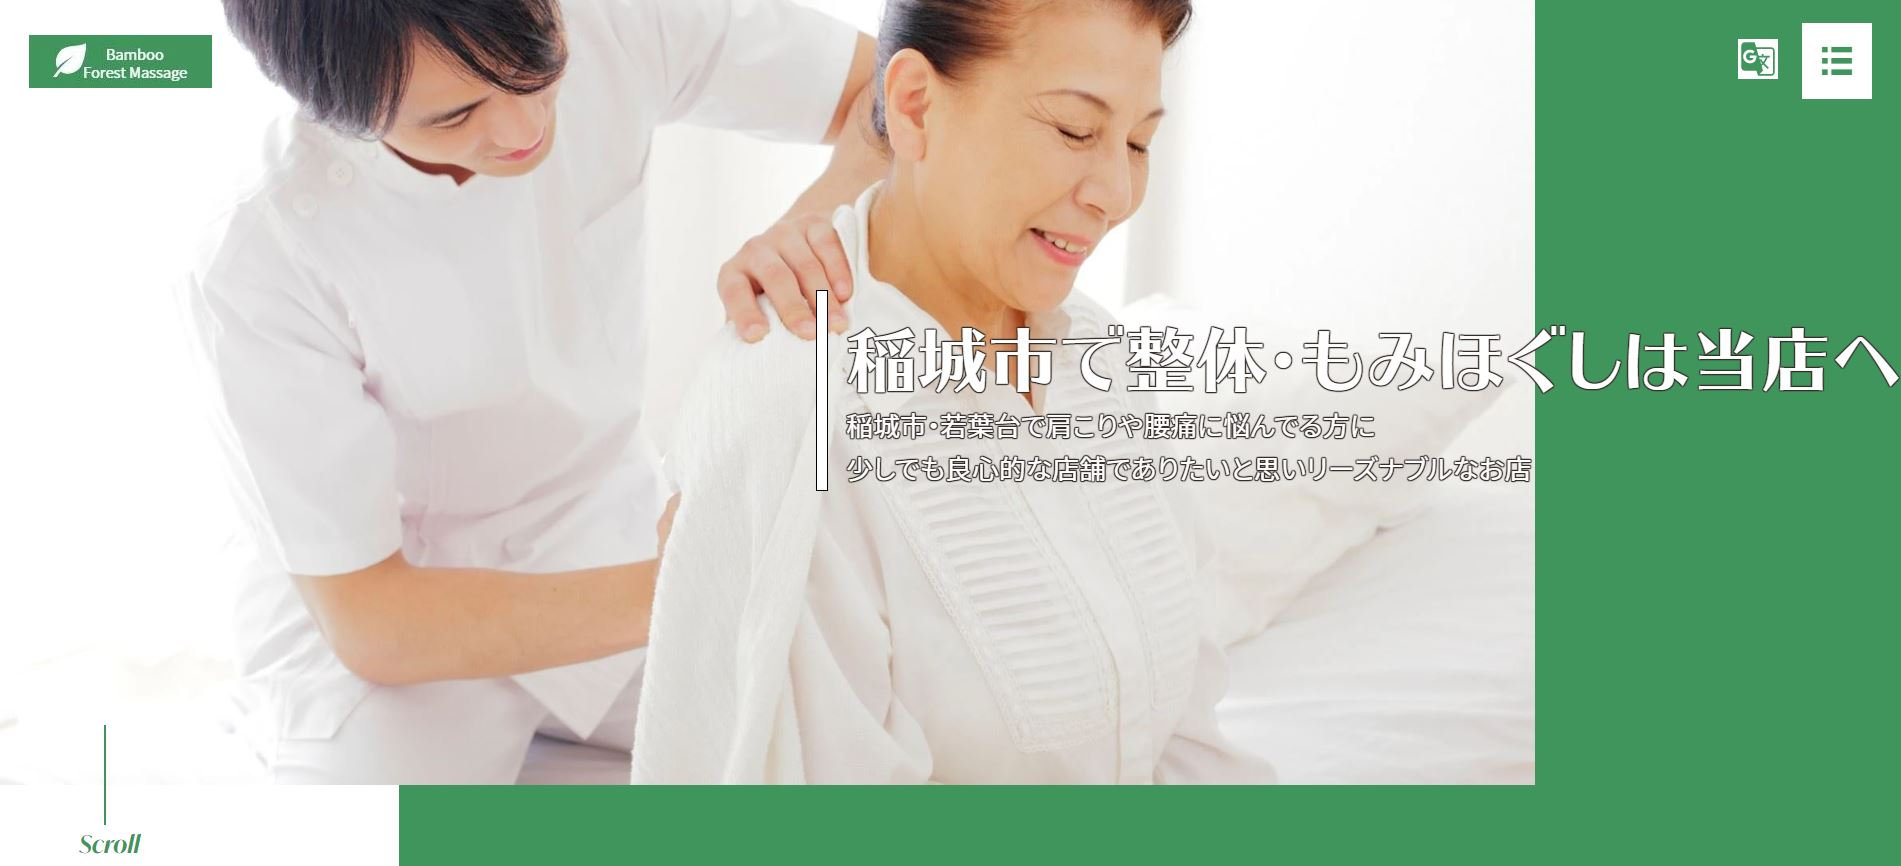 Bamboo Forest Massage